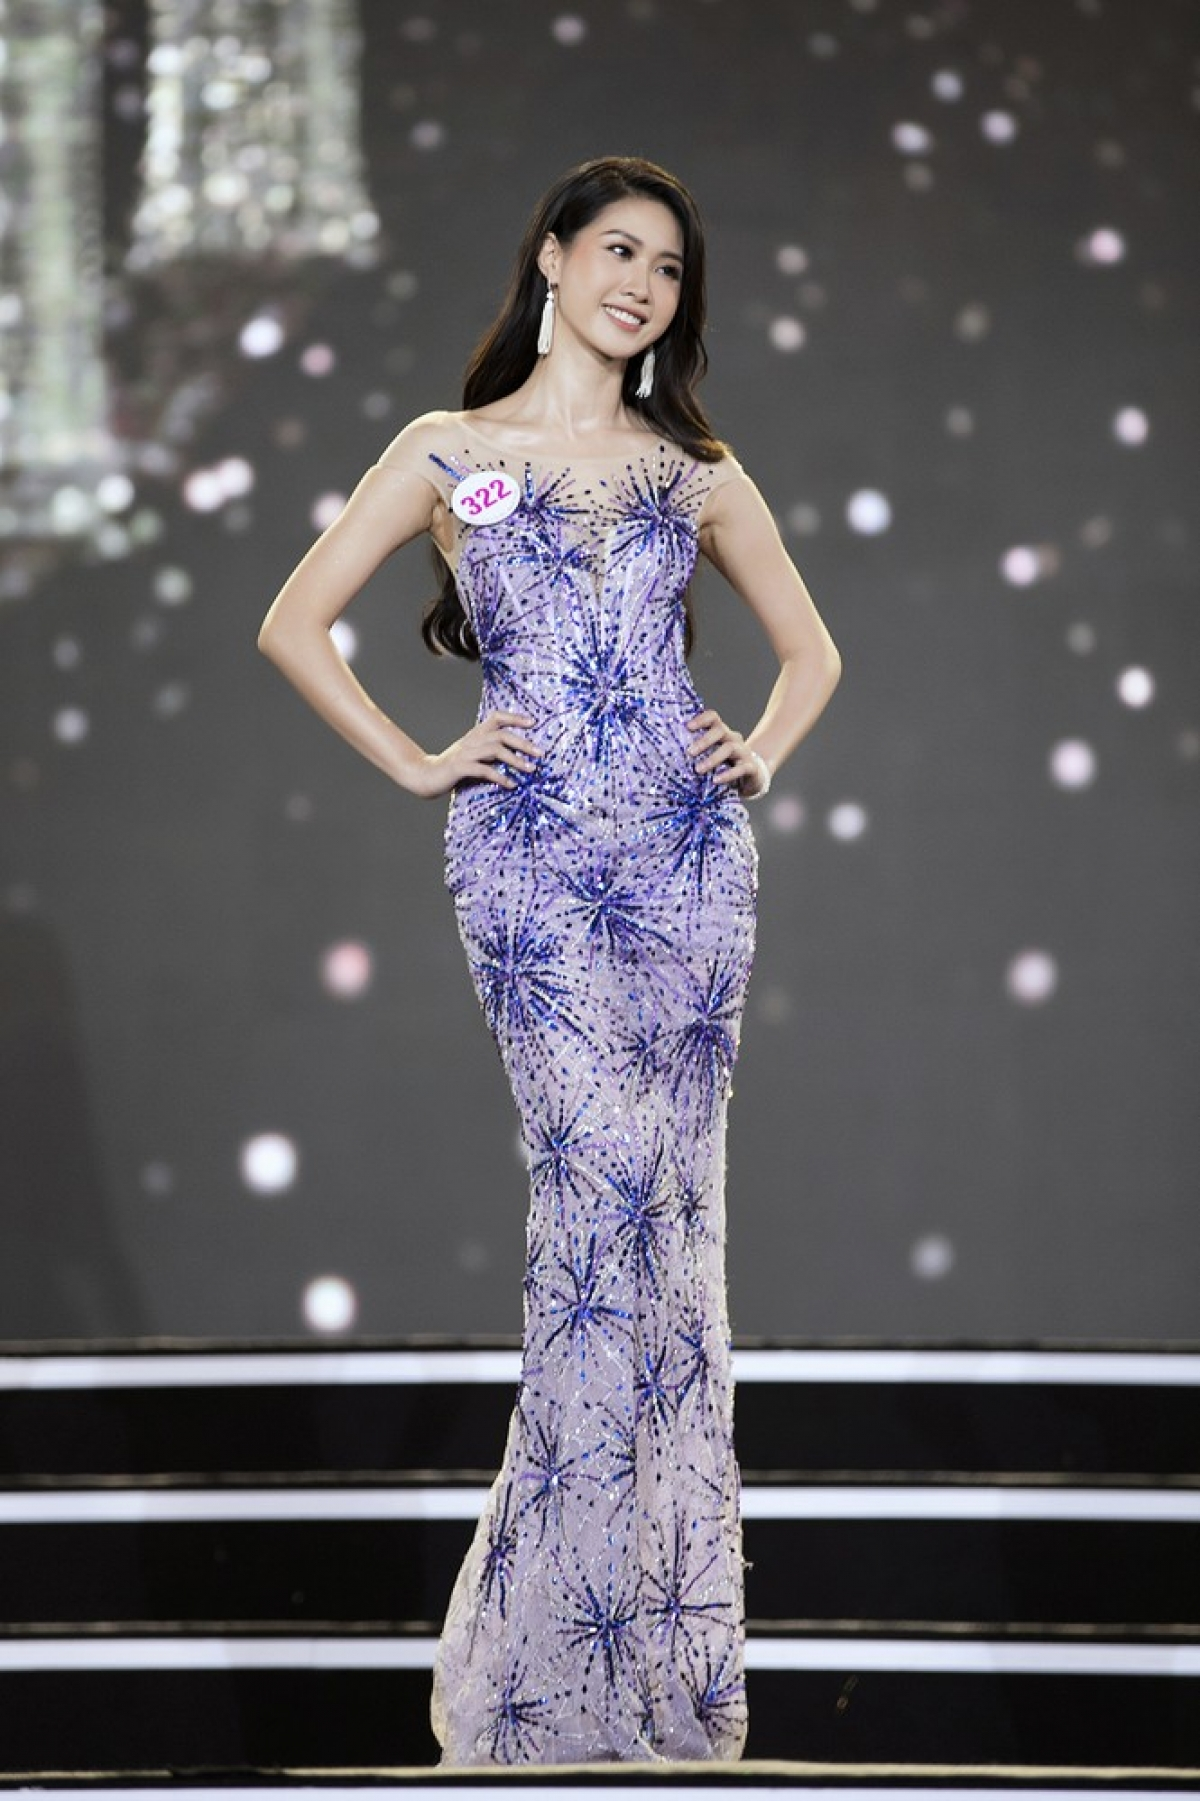 Pham Thi Ngoc Anh comes from Hanoi and is 1.70 metres tall with measurements of 77-59–91.